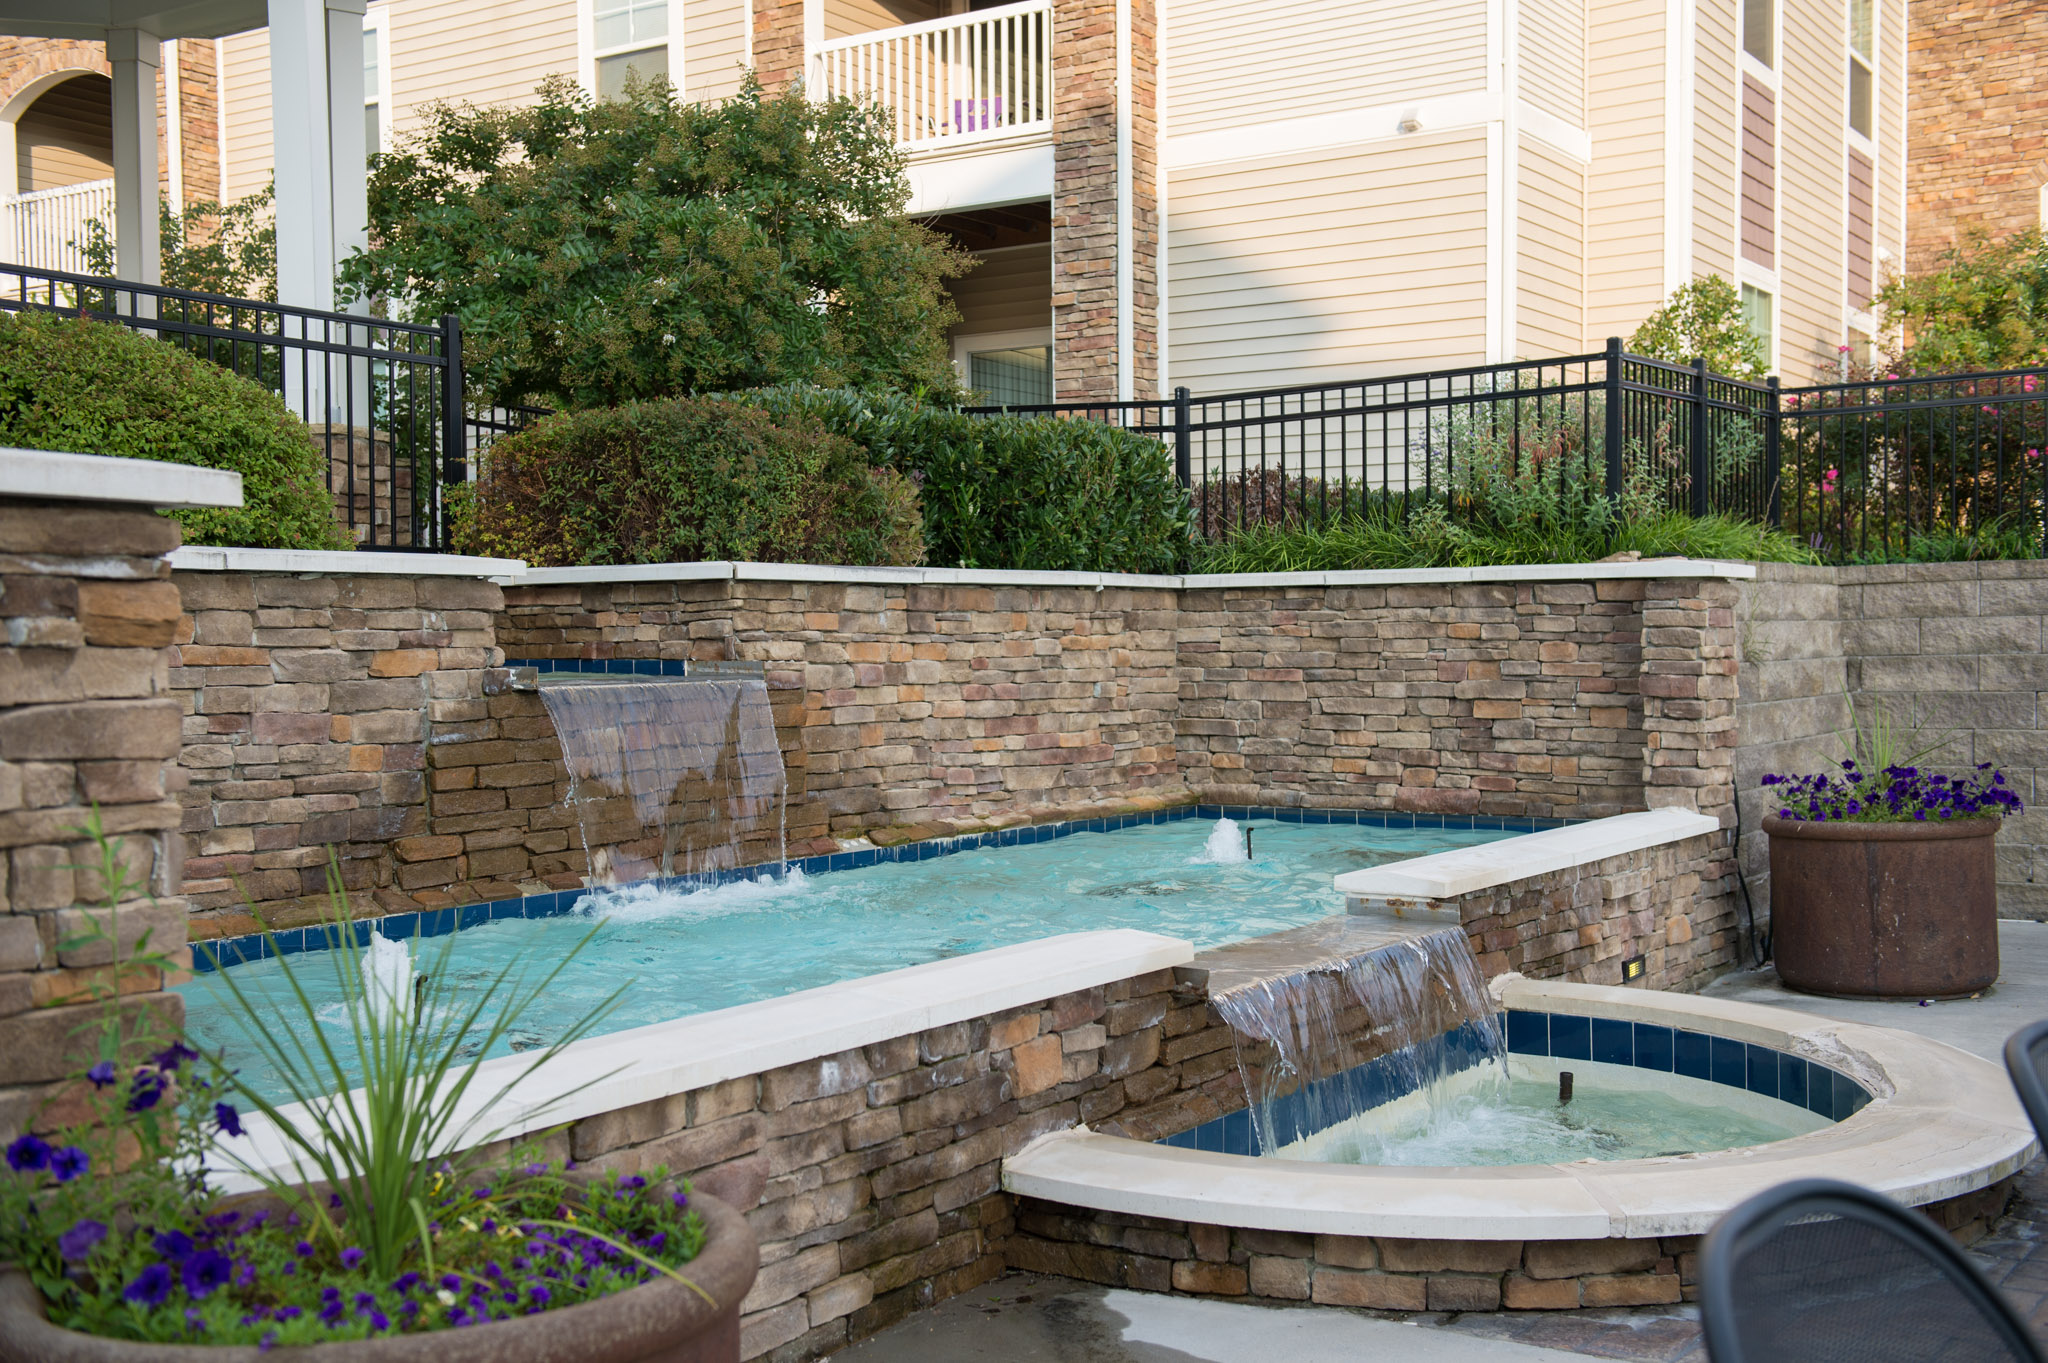 North 38 Exteriors for Web-1034.jpg